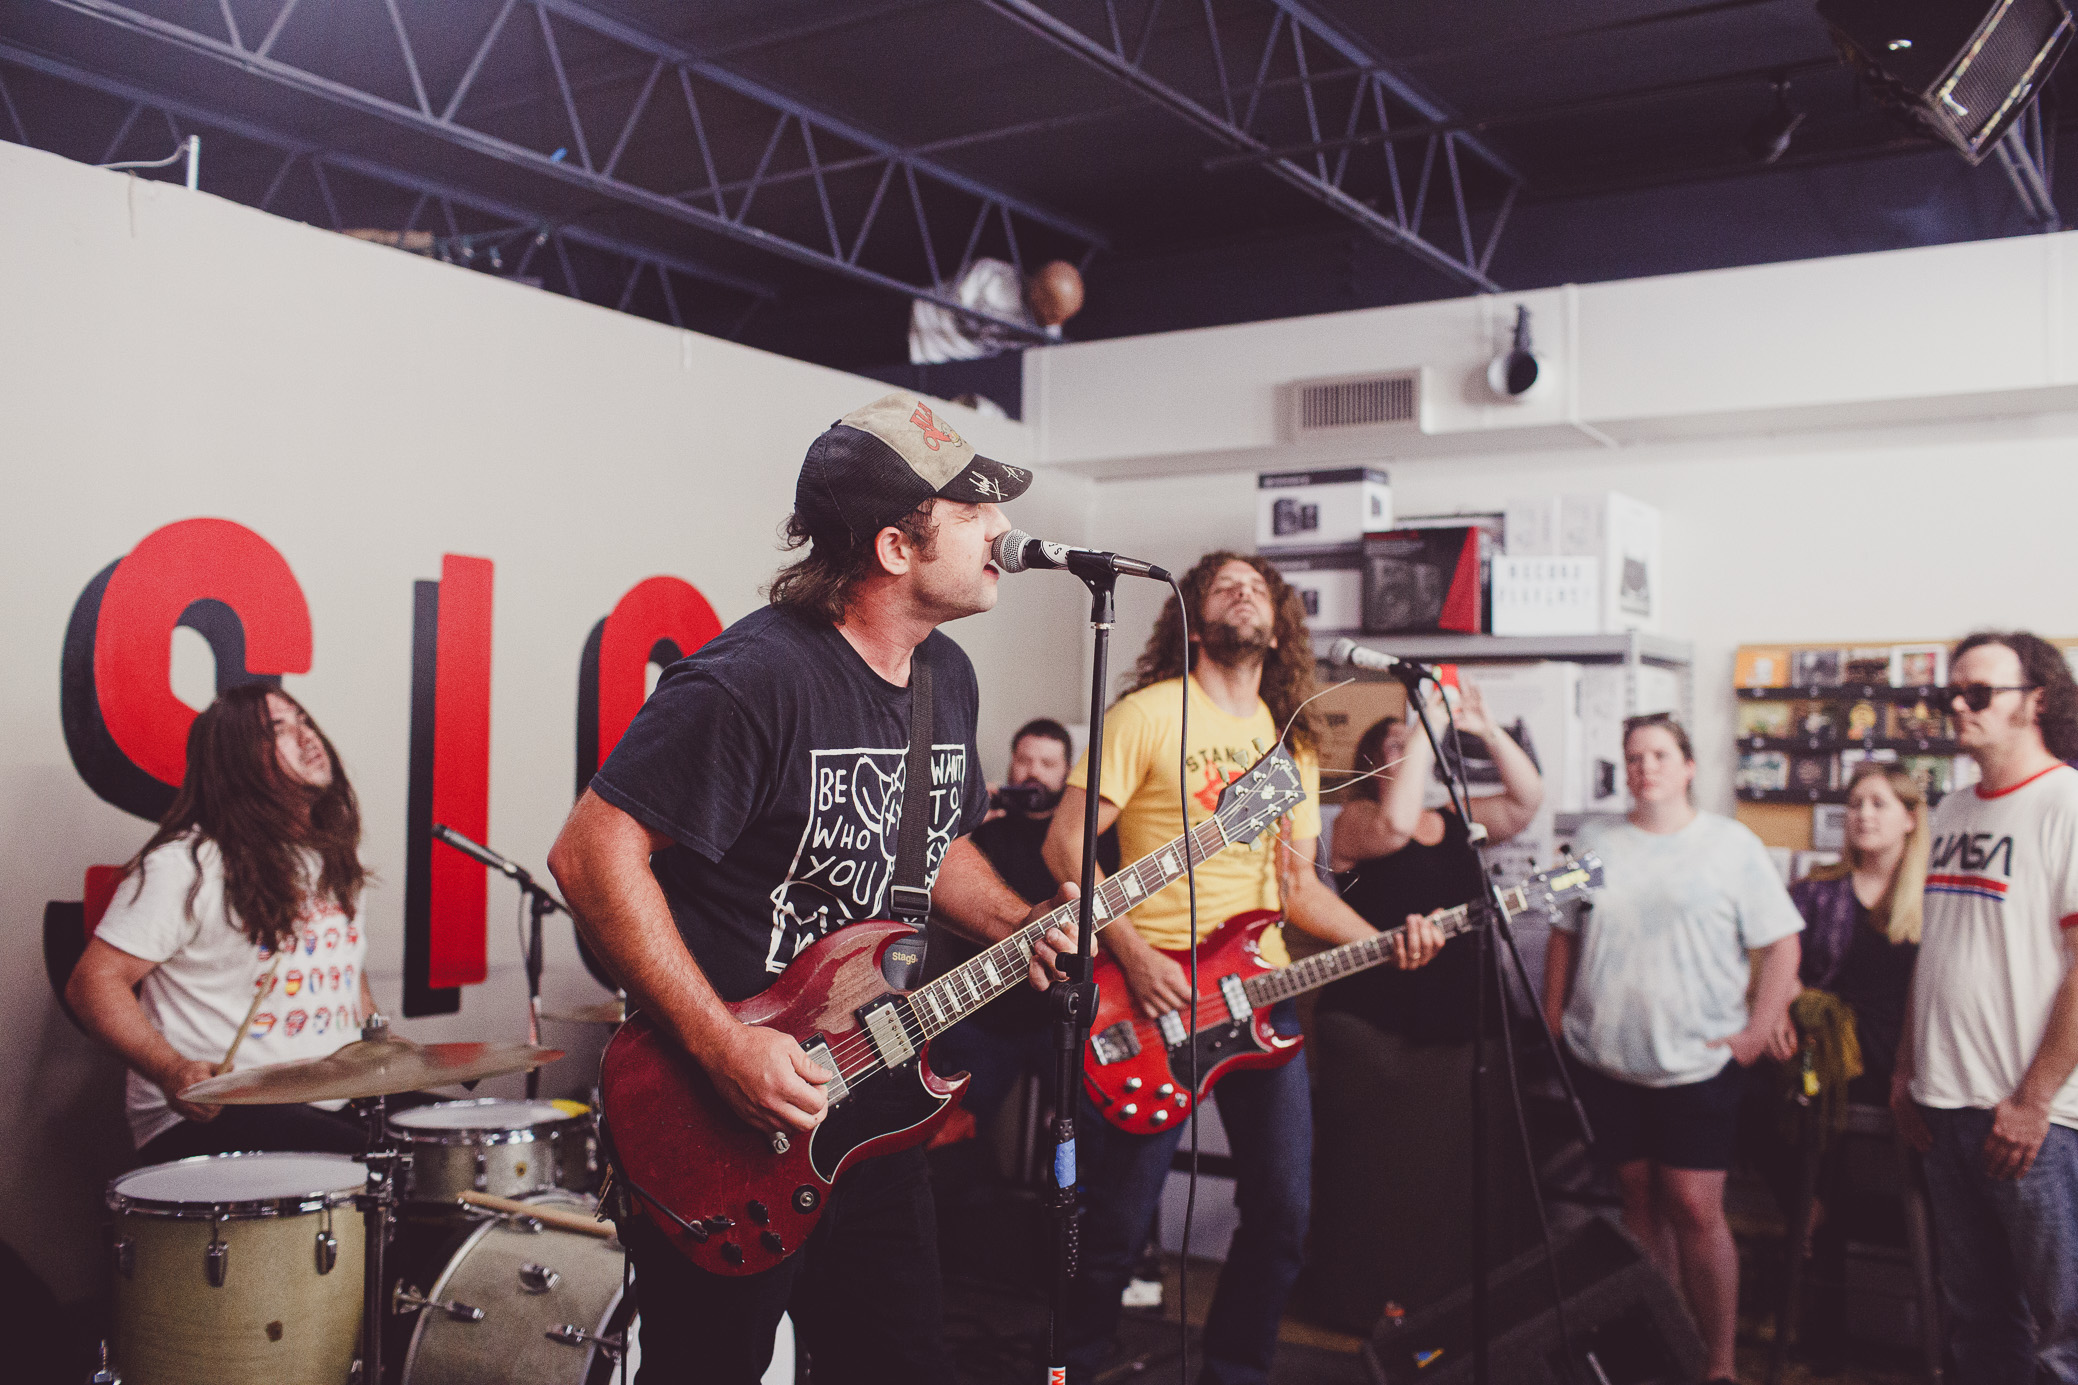 Lee Bains III & The Glory Fires perform at Seasick Records in Birmingham, Alabama on June 15th, 2019. (Photo by David A. Smith / DSmithScenes)